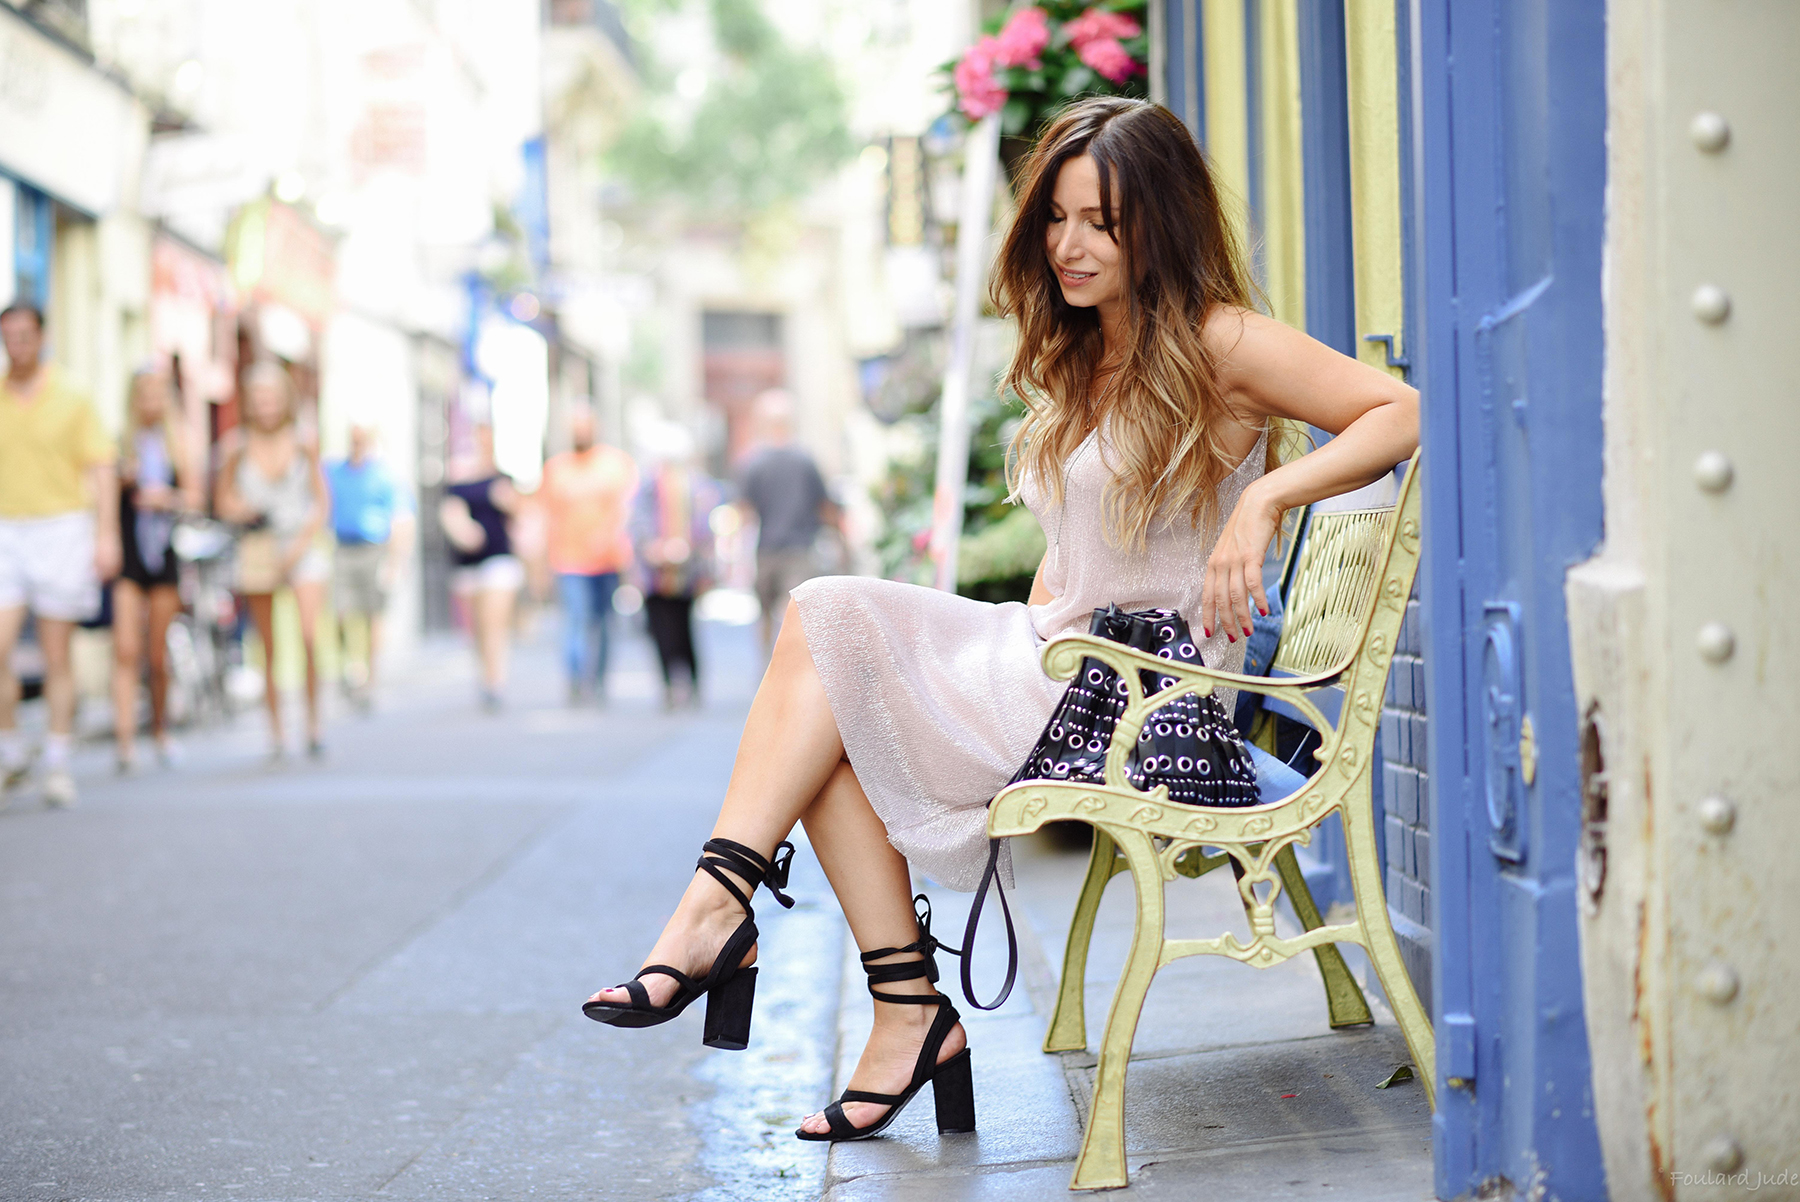 chic-and-romantic-outfit-in-paris